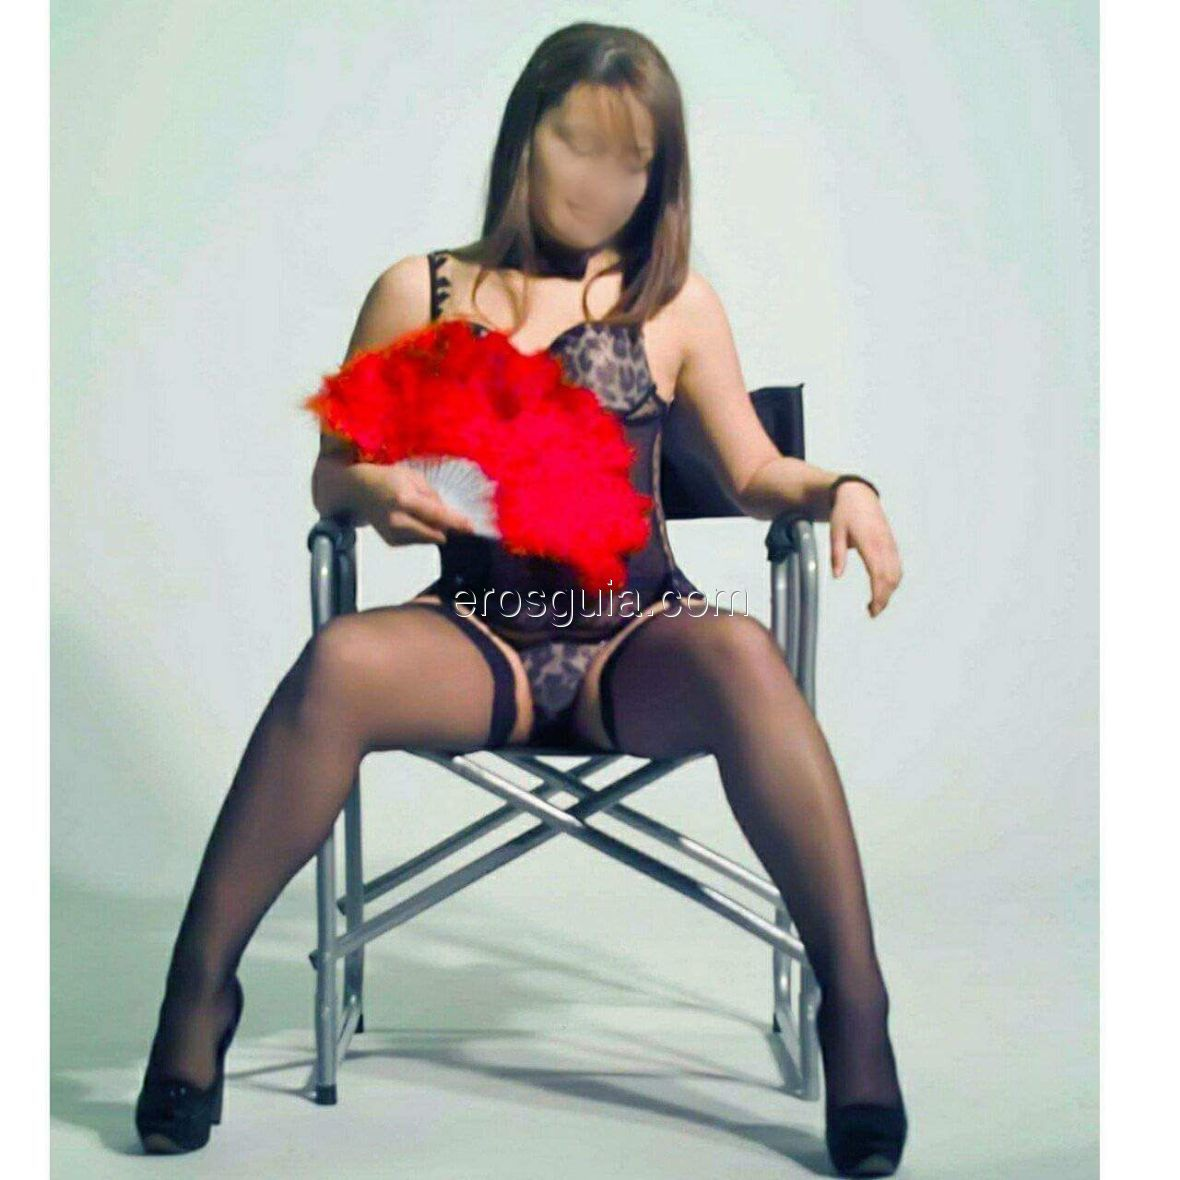 live erotic massage escort spain